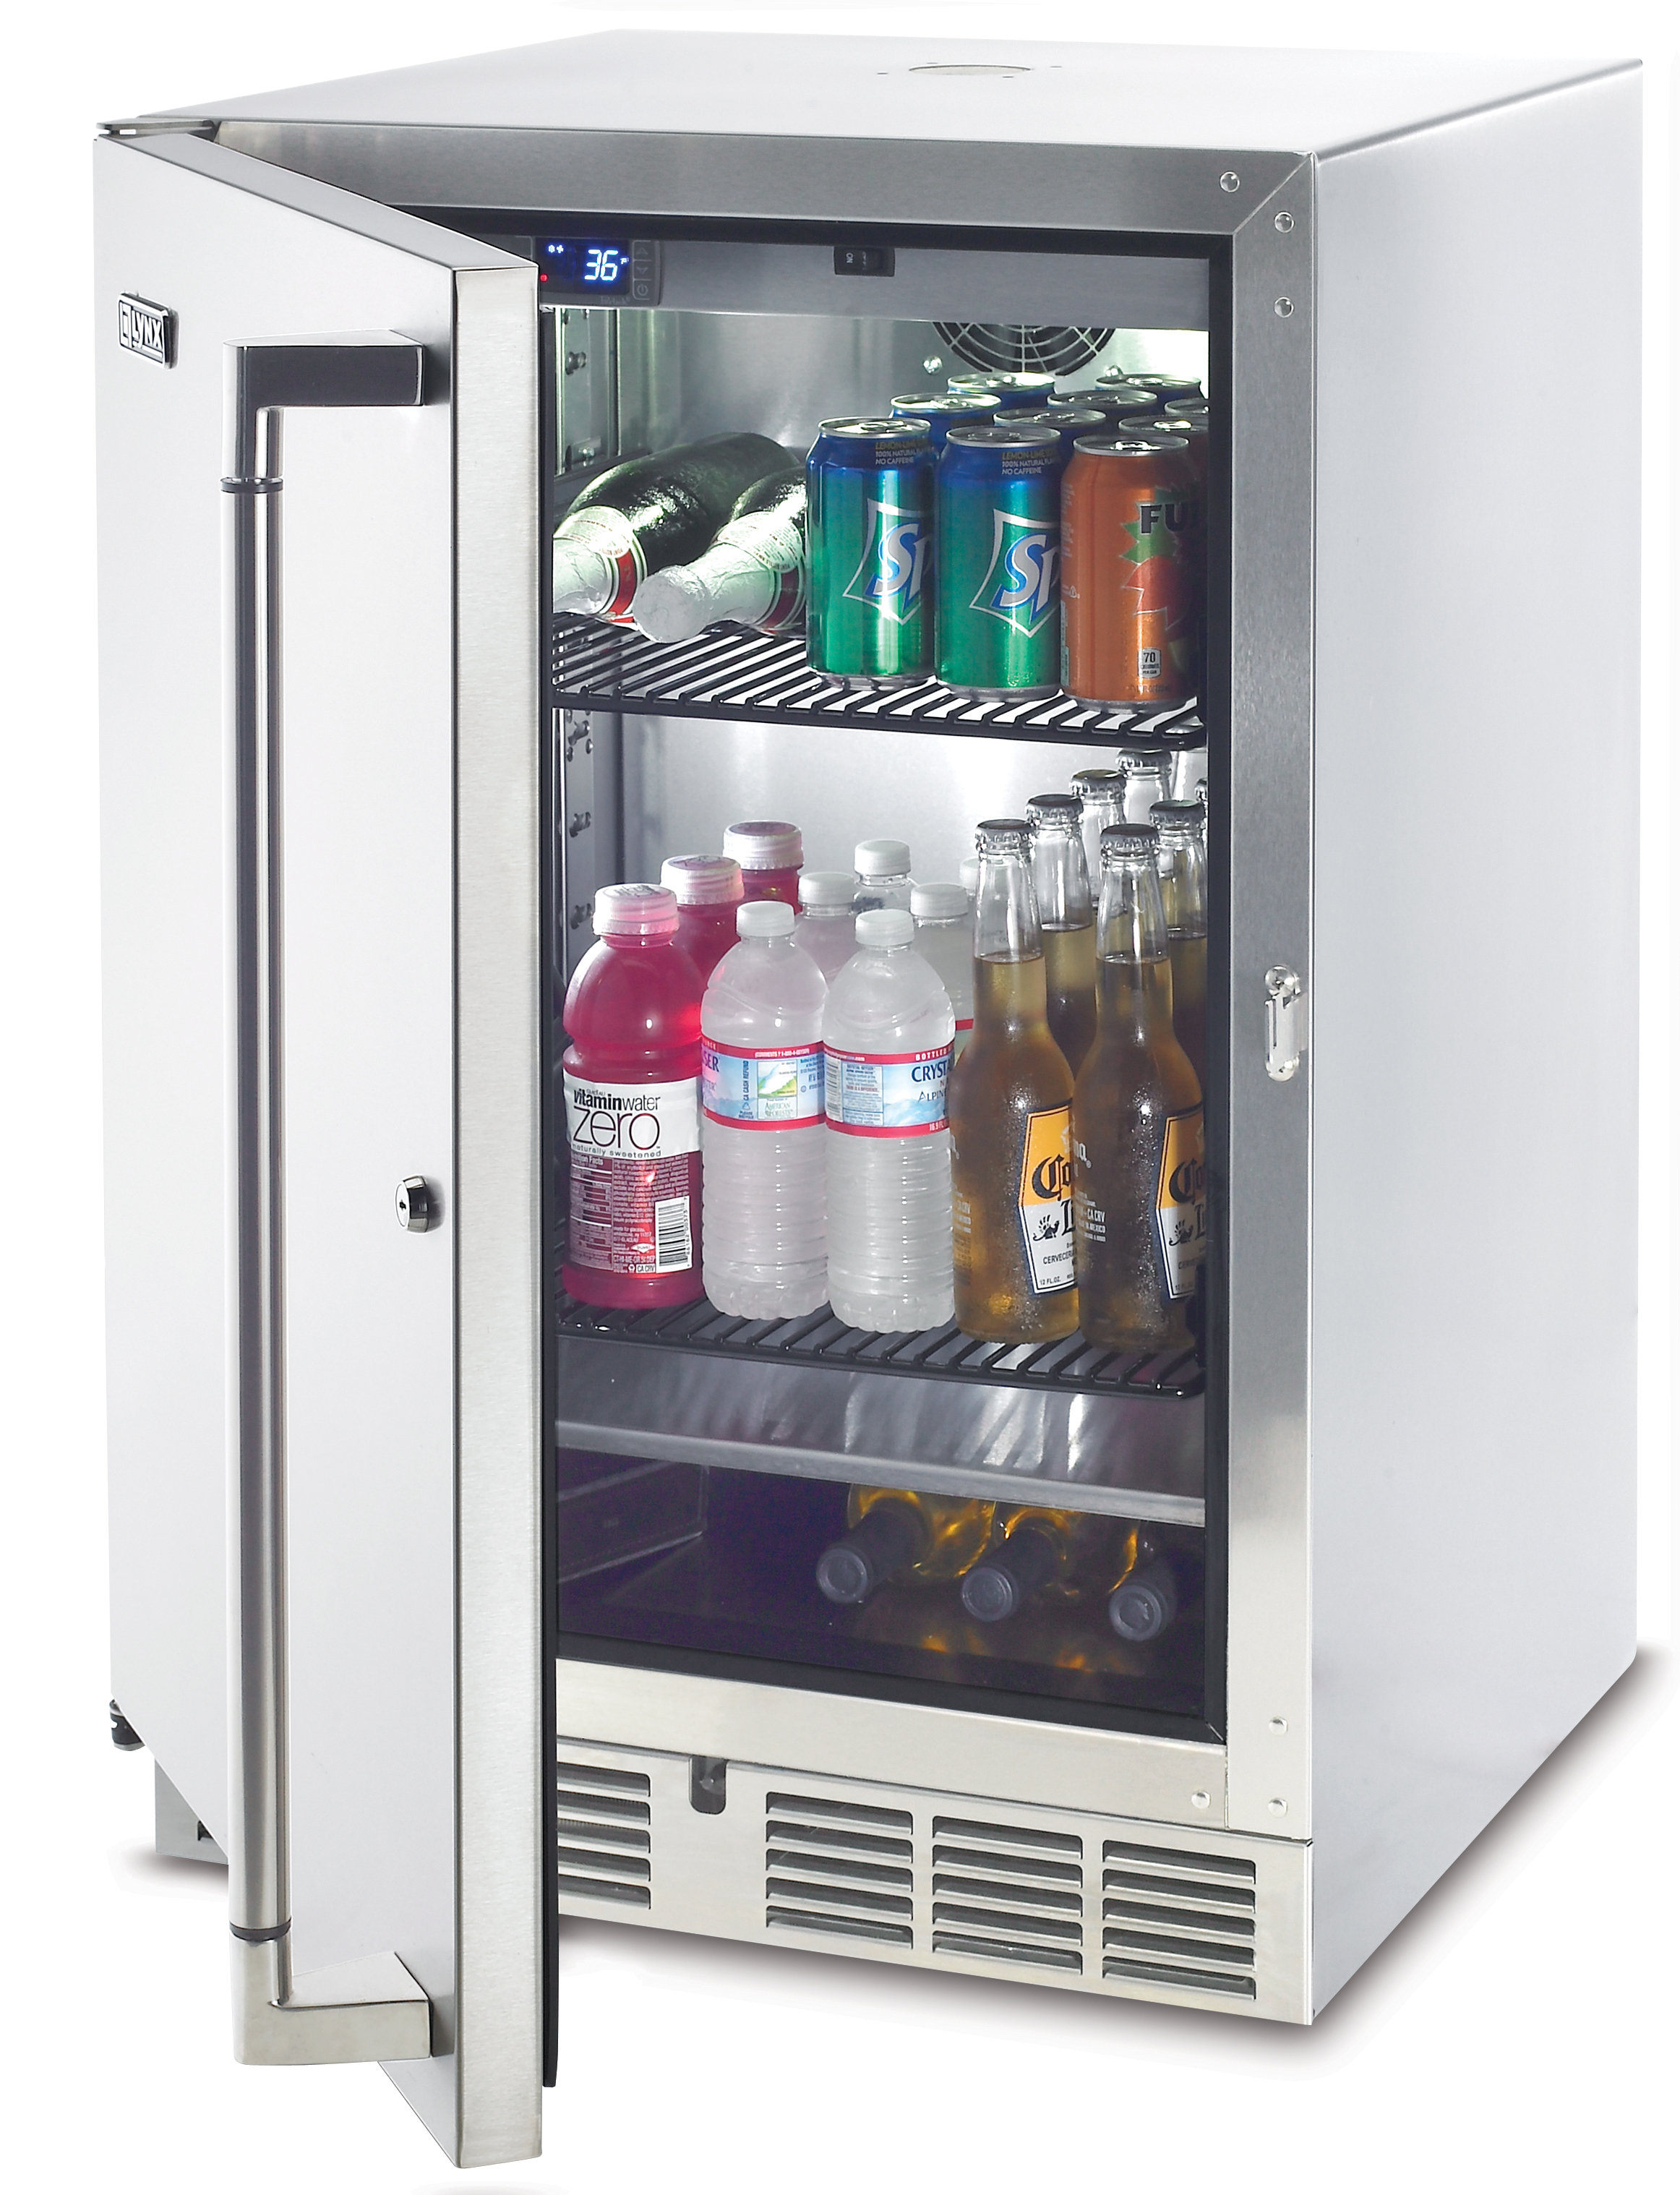 Shop our selection of Beverage Coolers in the Appliances Department at The Home Depot.